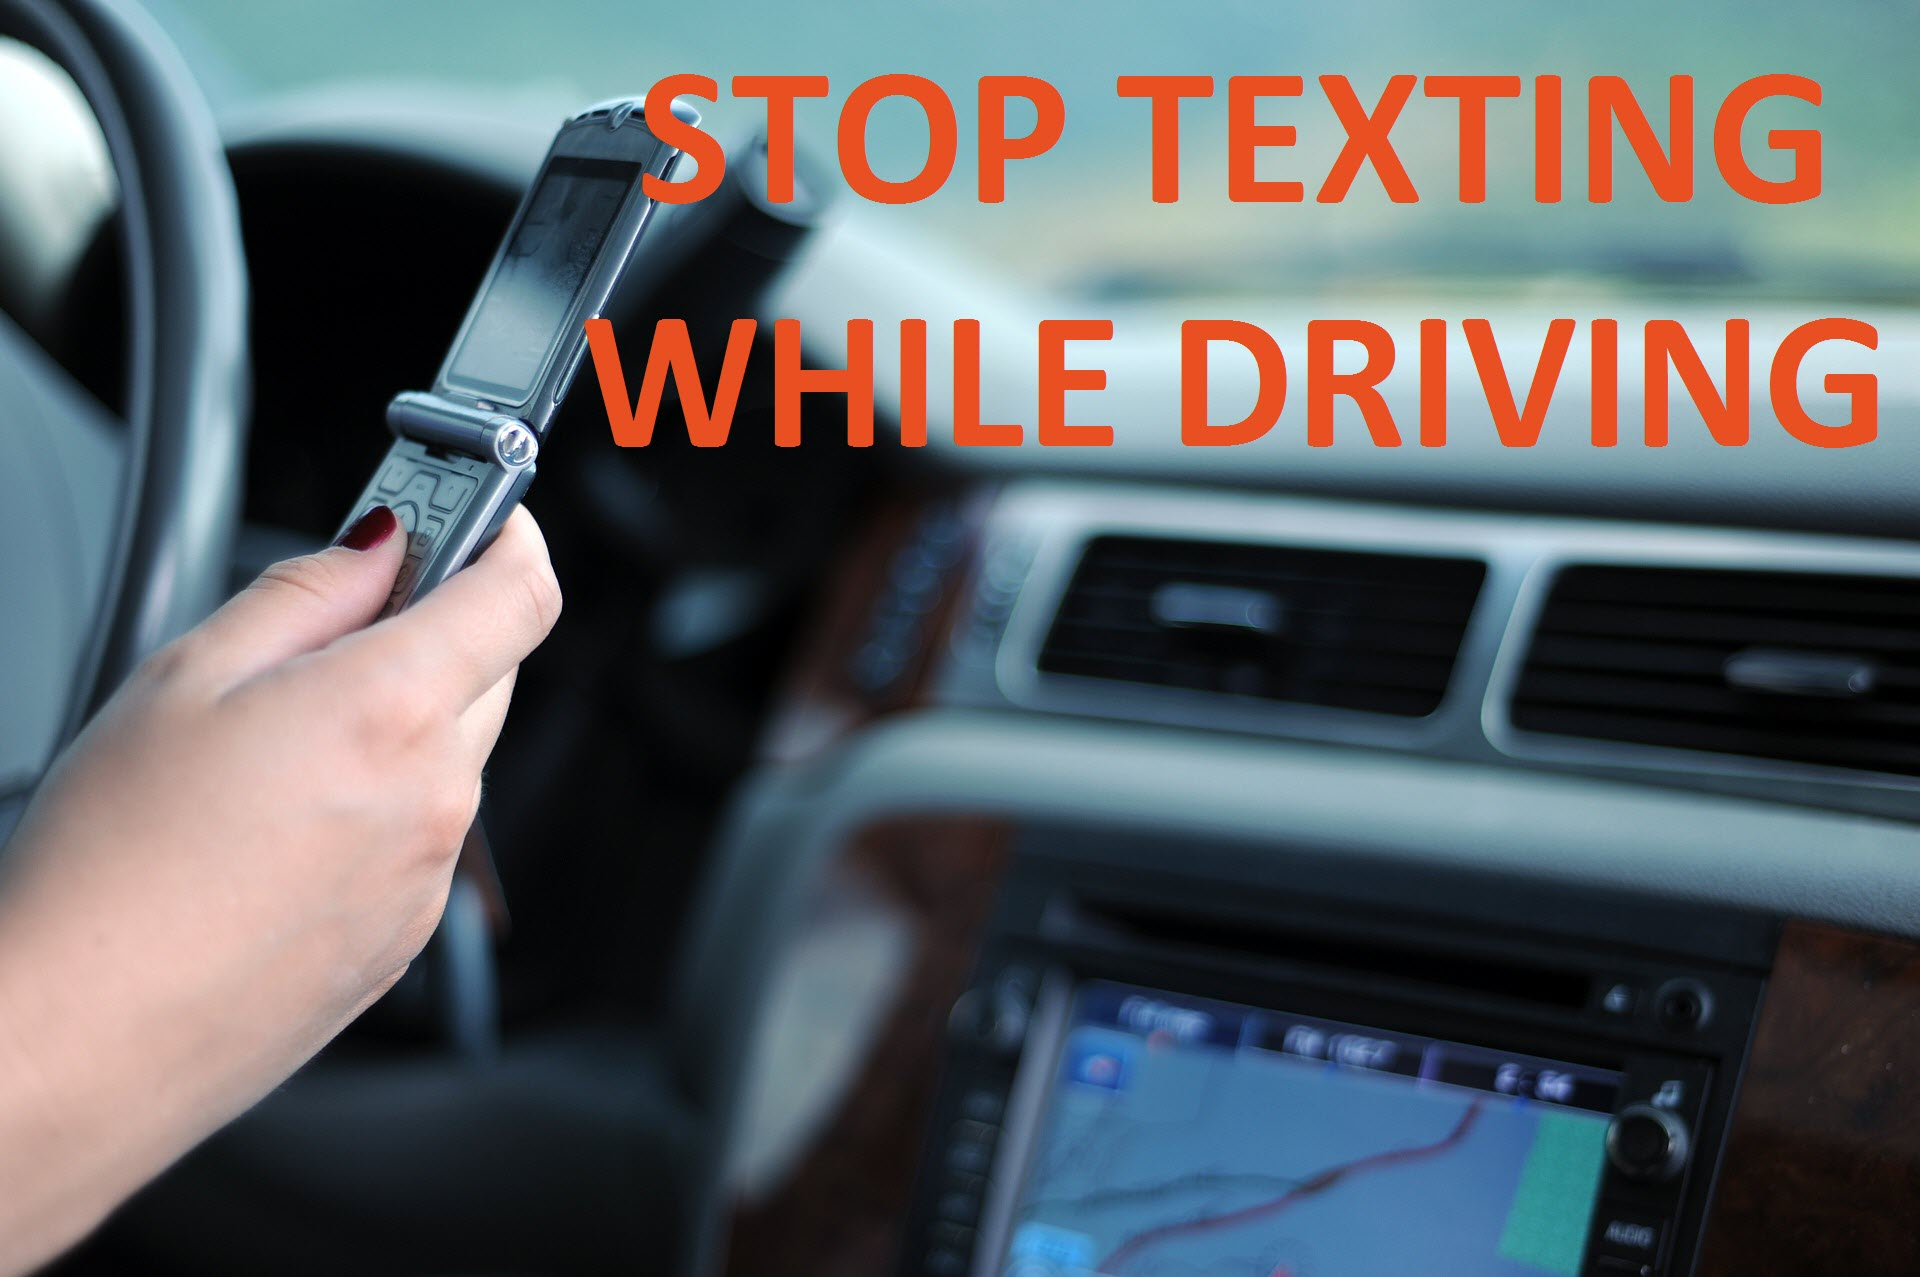 Stop Texting While Driving Sales